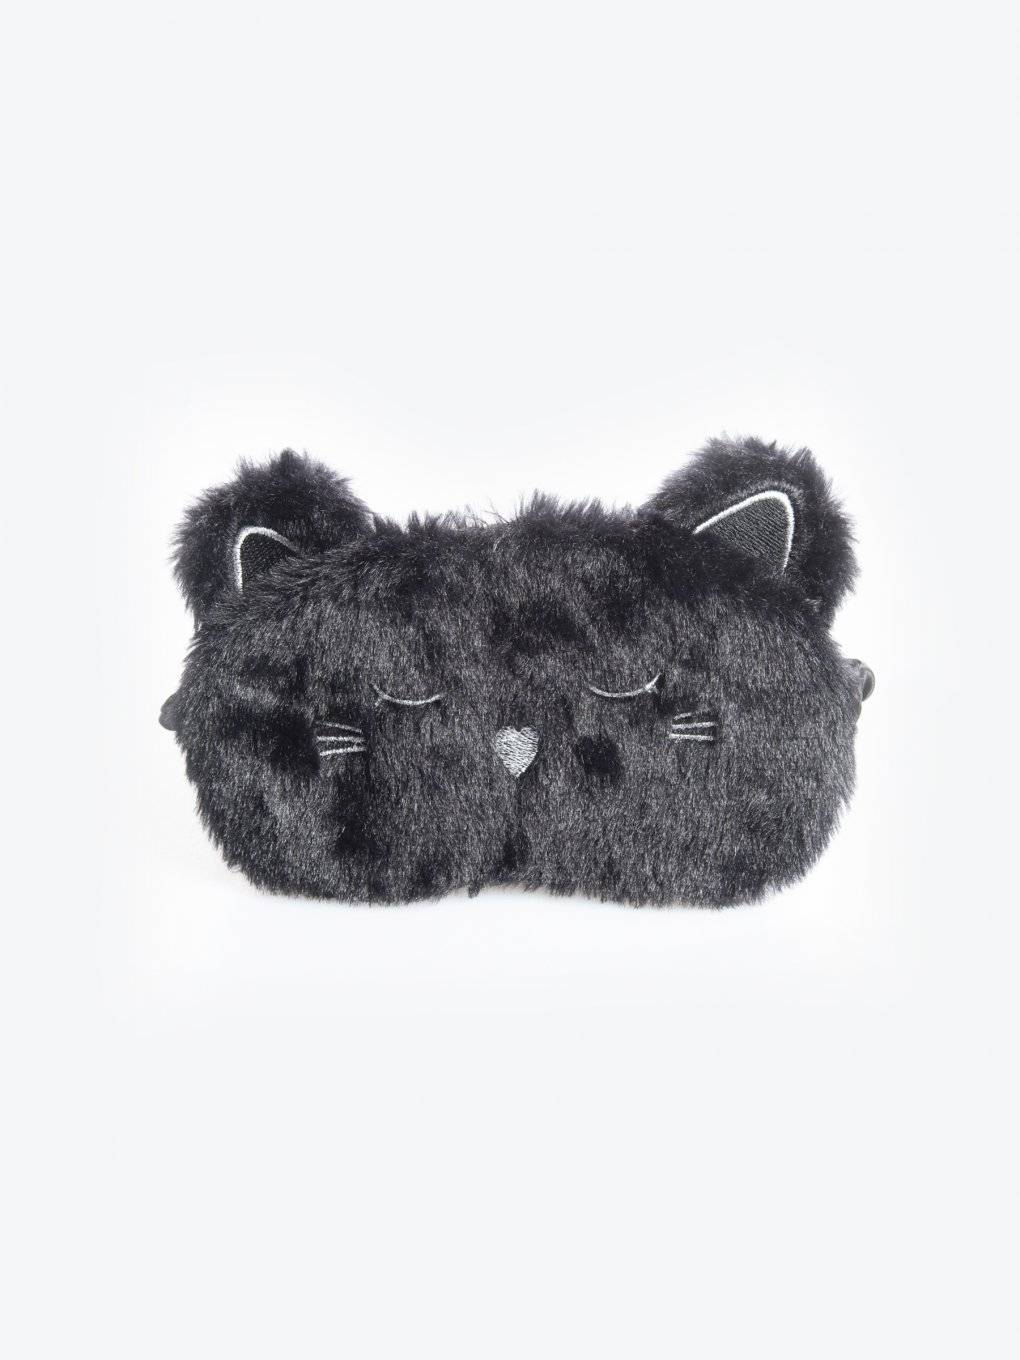 Kittty sleeping mask